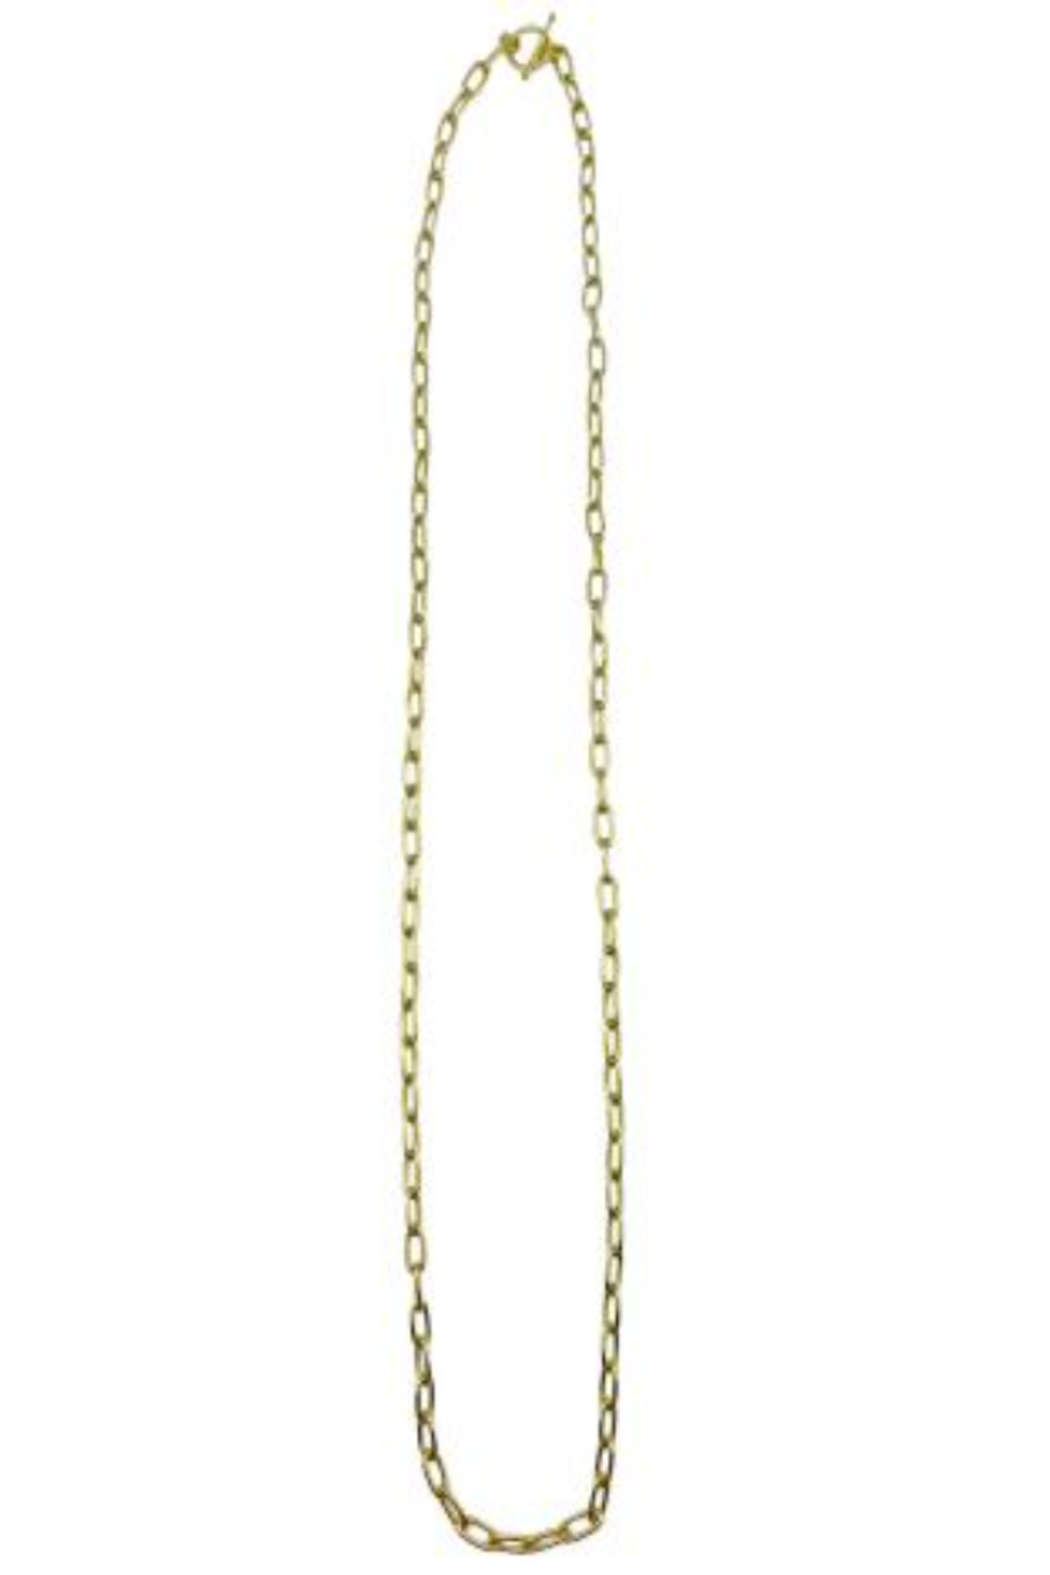 Anju BRASS GOLD CHAINLINK NECKLACE - Main Image